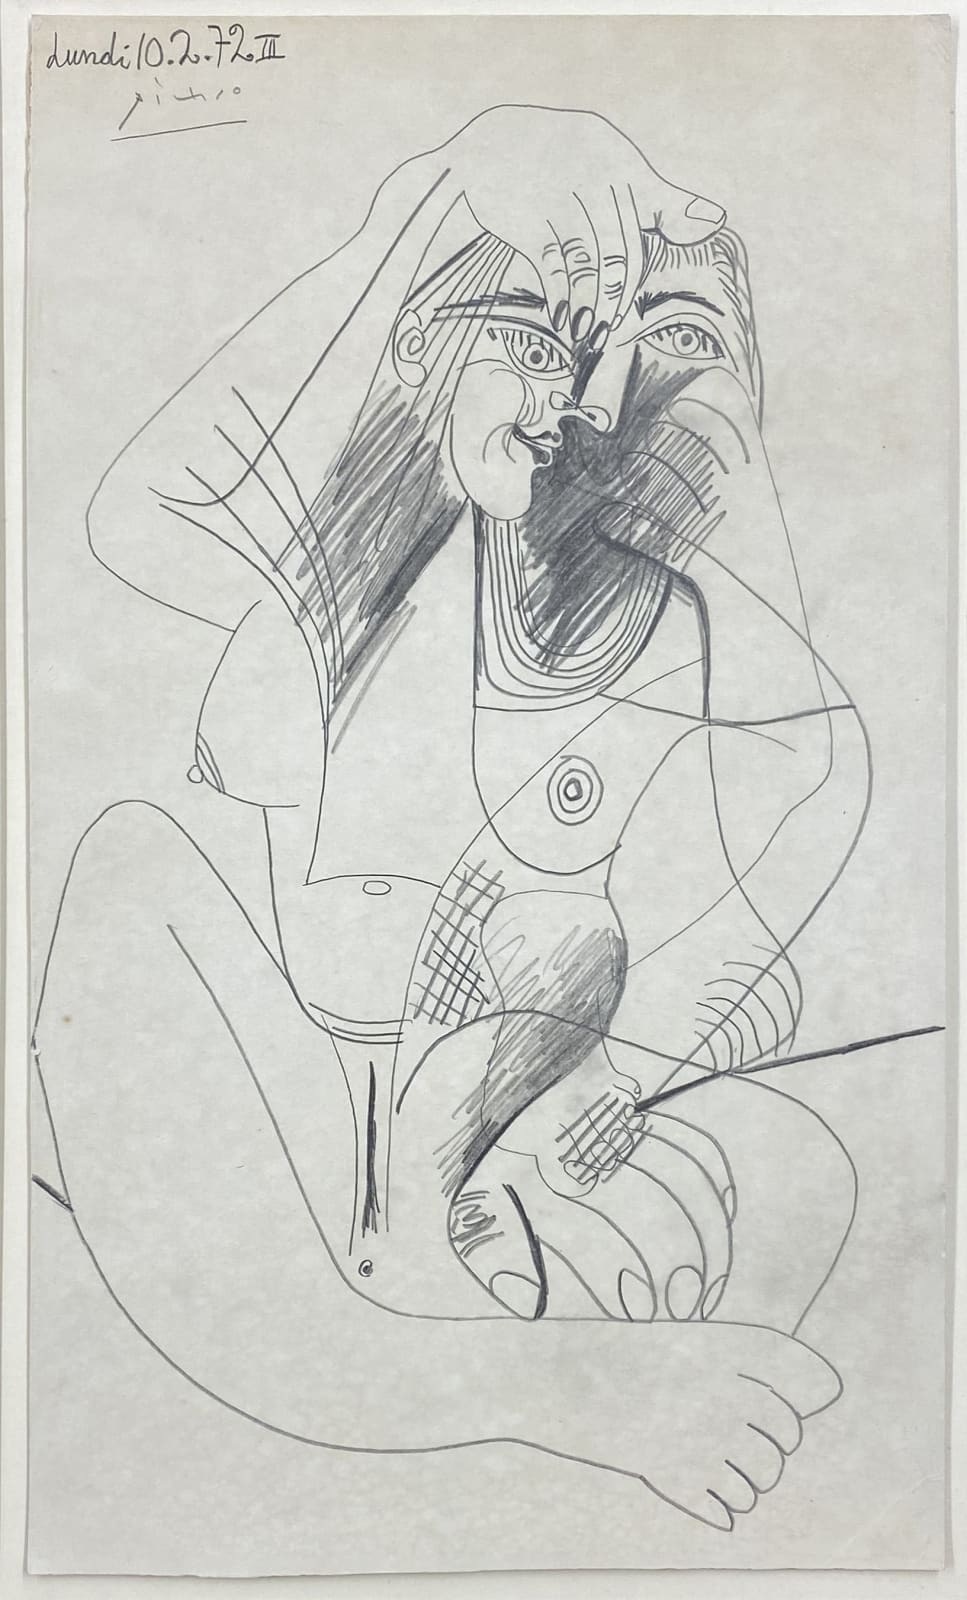 Pablo Picasso Nu assis 1972 drawing on cardboard 18 x 10 5/8 inches 45.7 x 27 cm